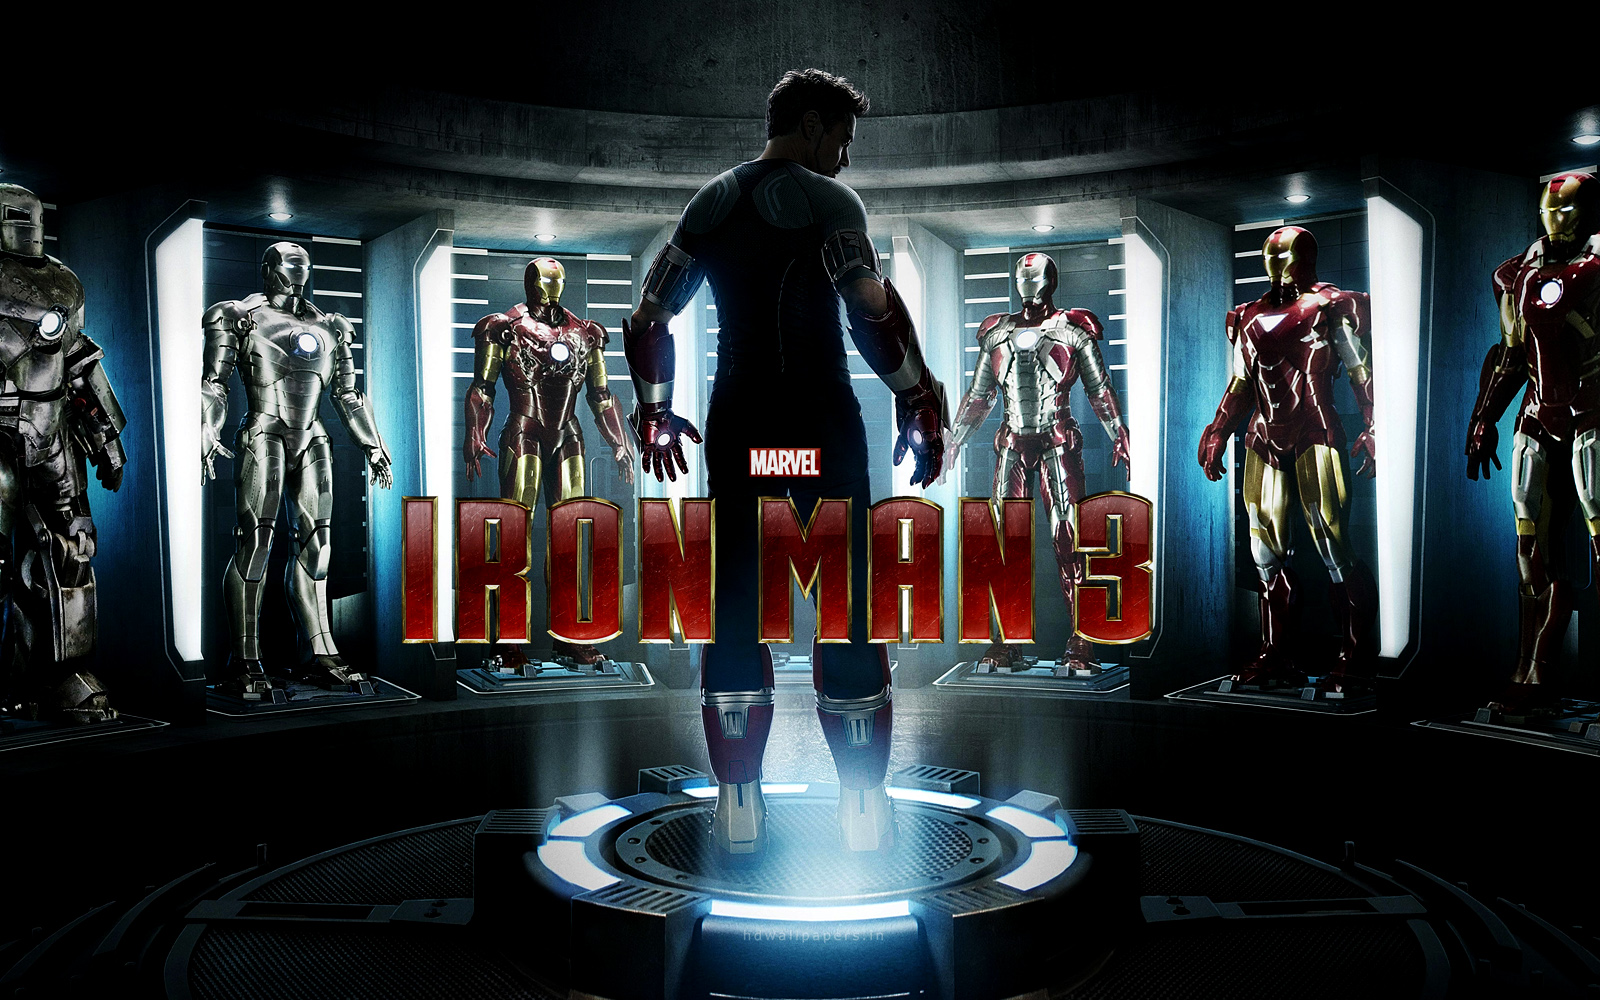 http://1.bp.blogspot.com/-z_XpCvCFAgk/UMZ5mIks8KI/AAAAAAAAQeU/4En4xocfdoU/s1600/Iron-Man-3-Movie-HD-Wallpaper_Vvallpaper.Net.jpg